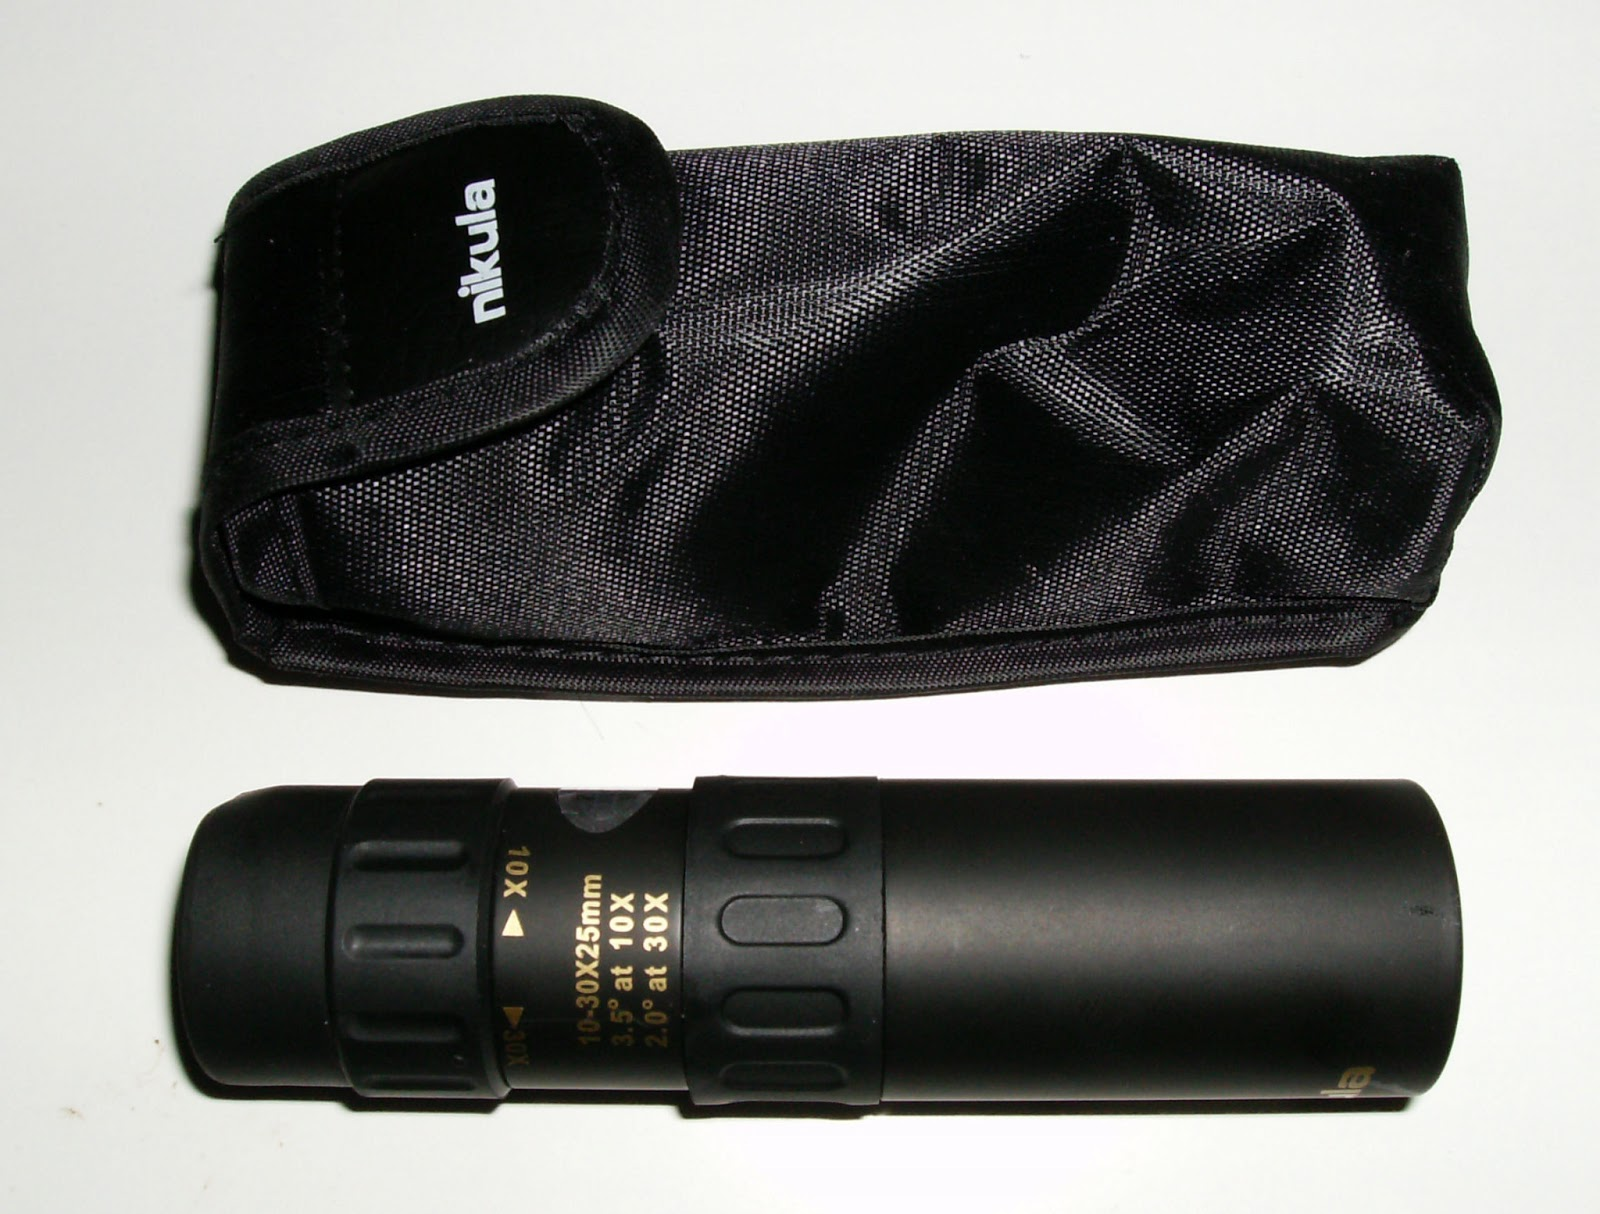 According to nemo field review nikula zoom monocular